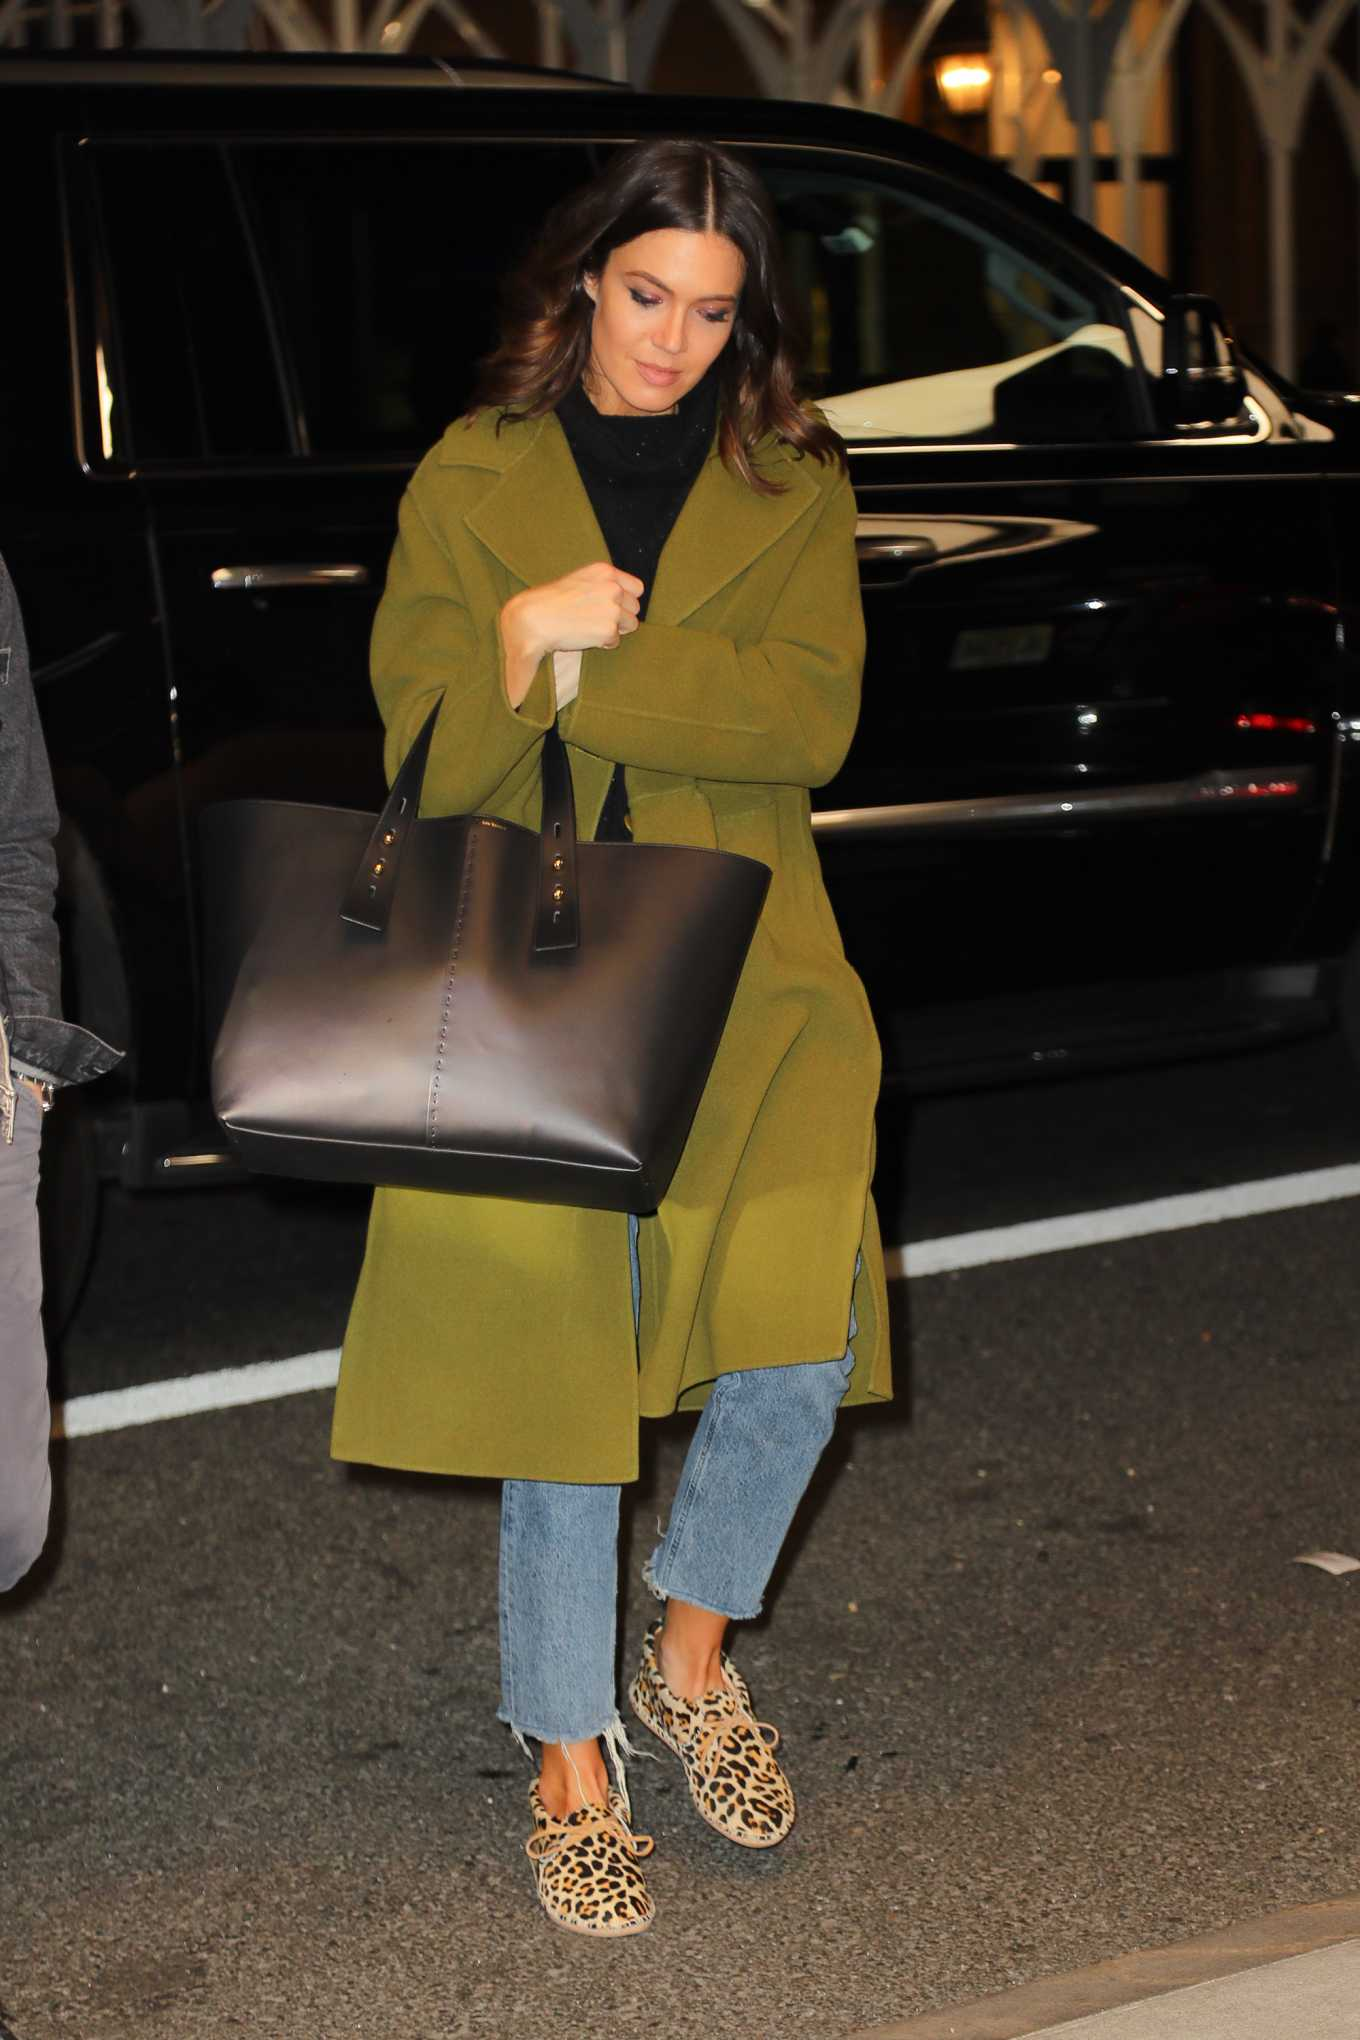 Mandy Moore - Outside of her hotel in New York